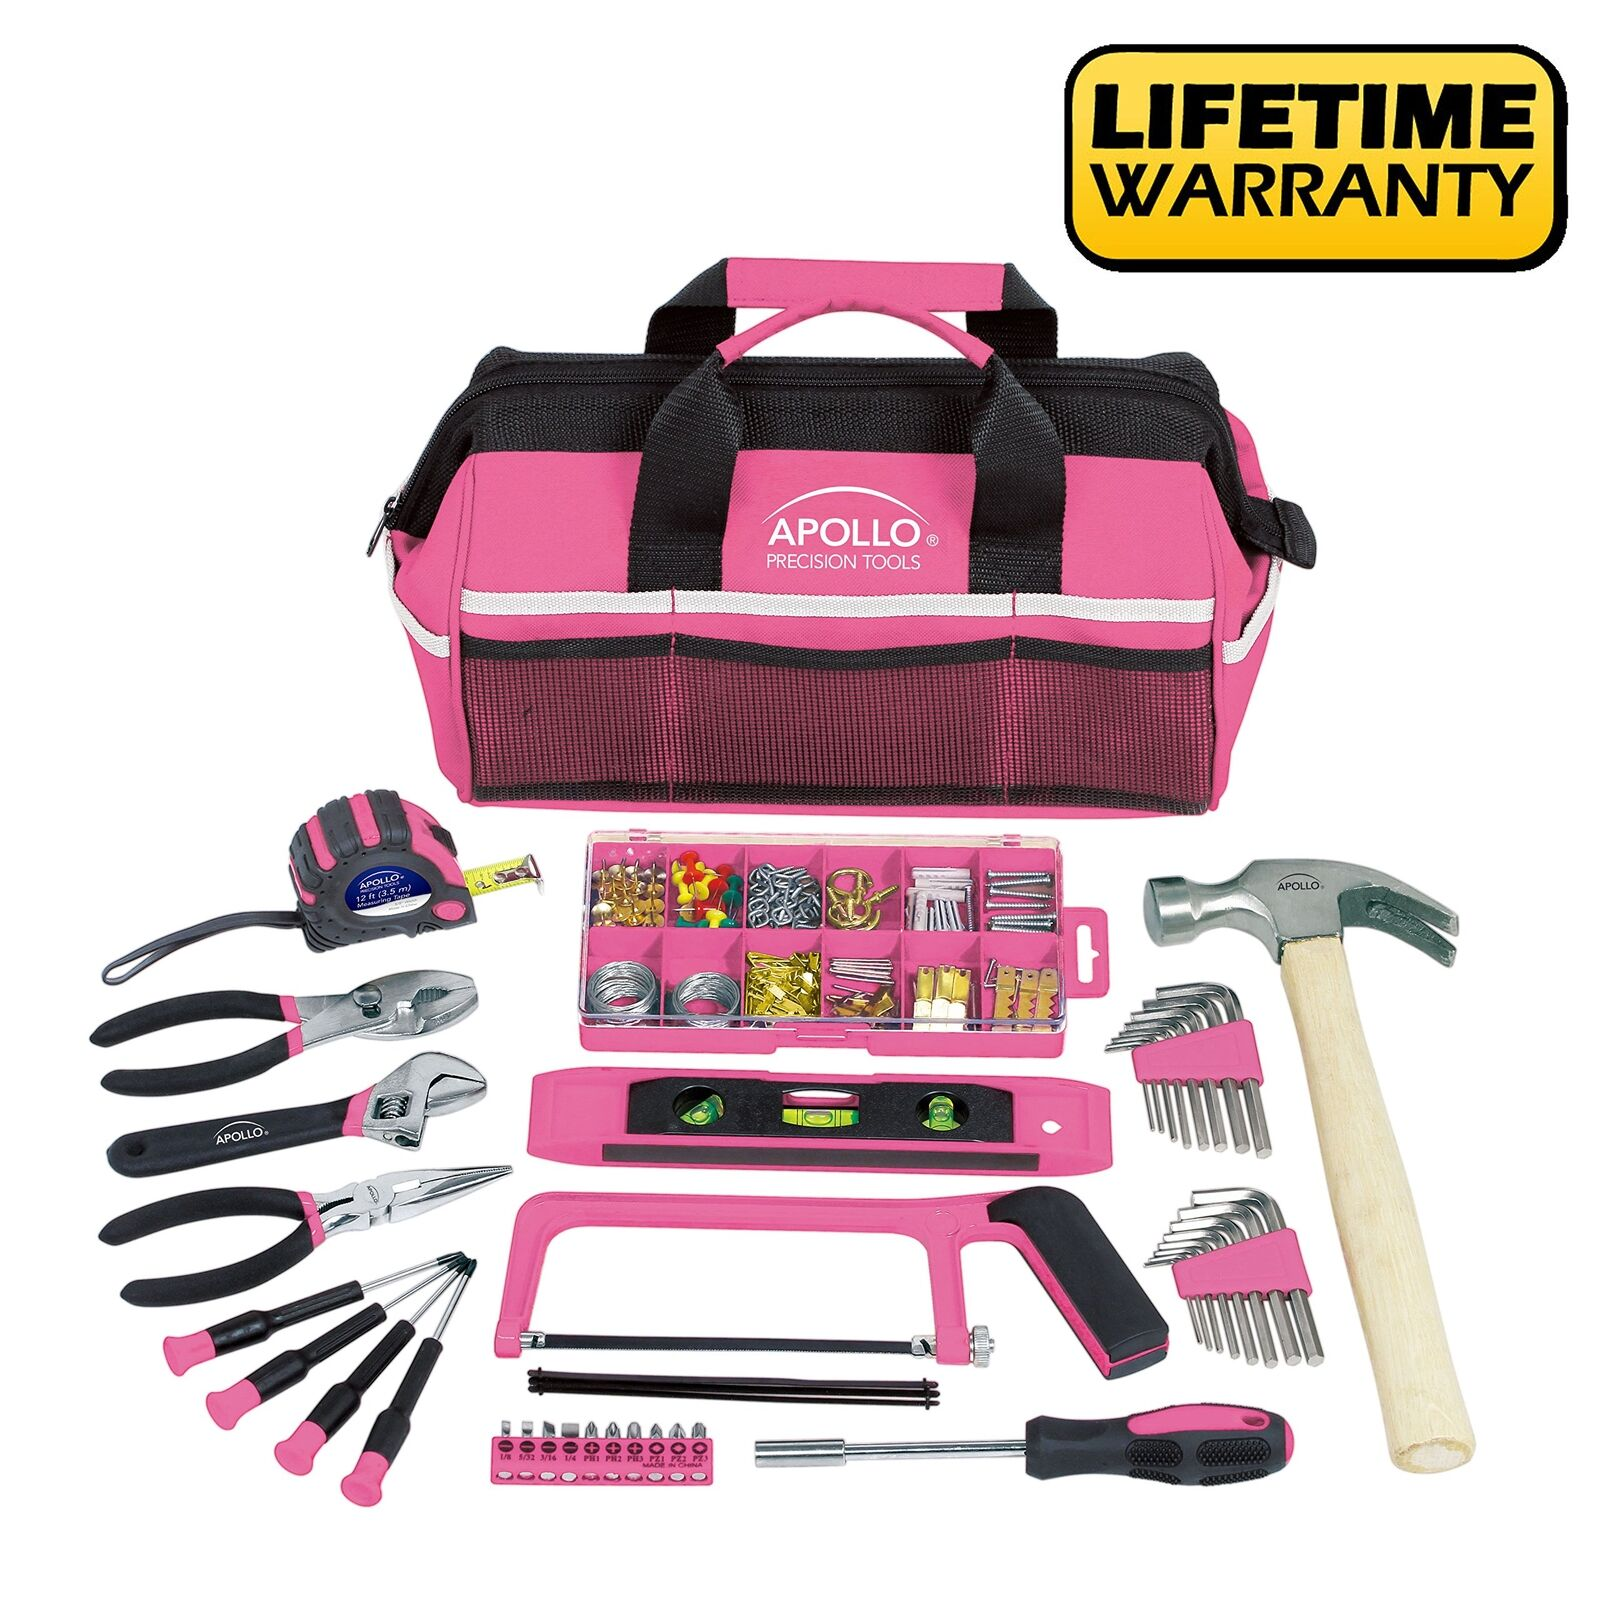 Apollo Tools DT0020P 201 Piece Household Tool Kit with Most Reached Tools in a